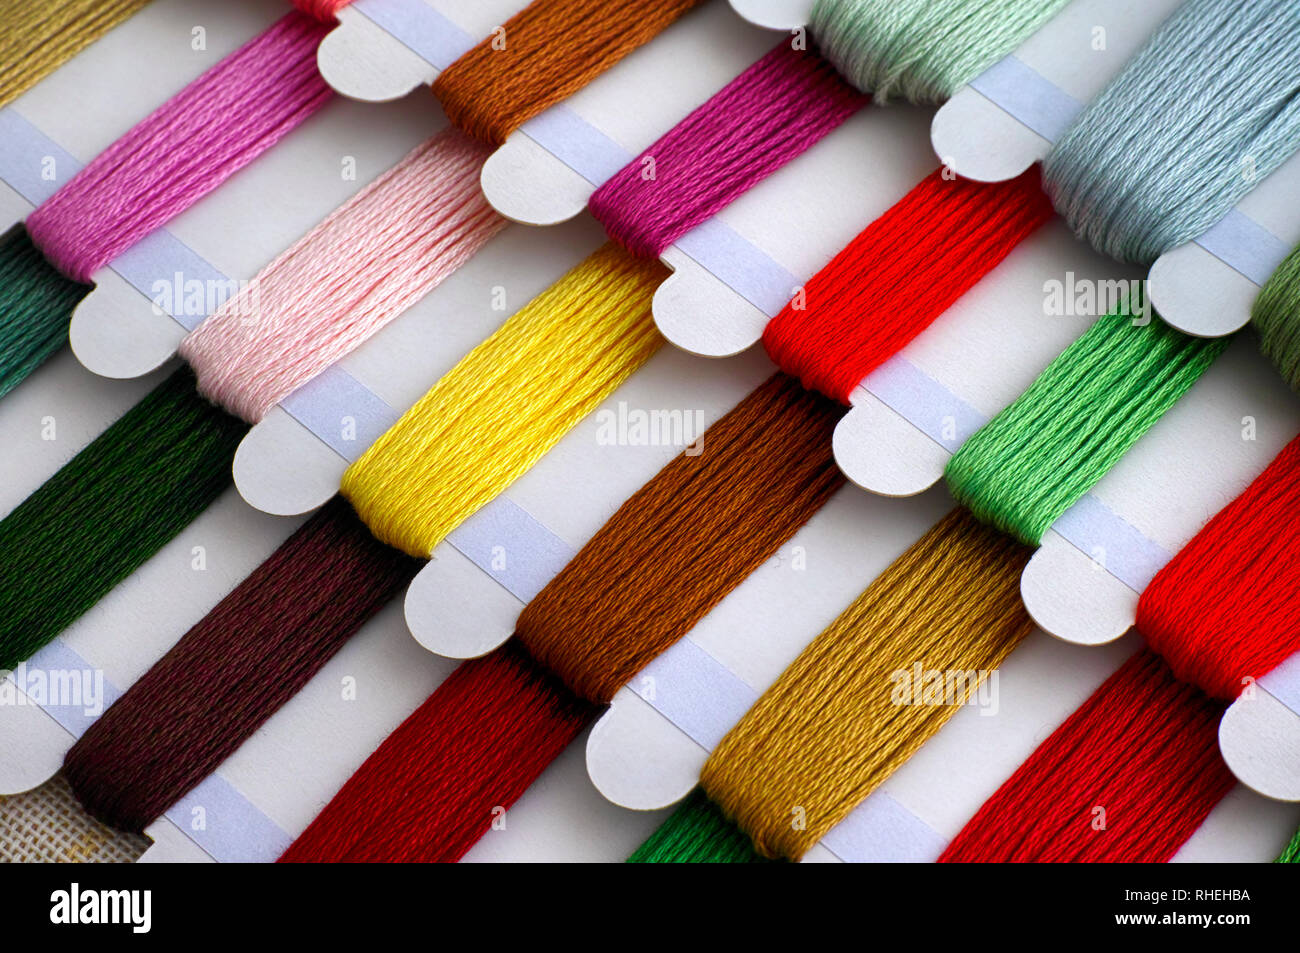 Colored embroidery threads on spools ready for cross stitch. Close-up. - Stock Image